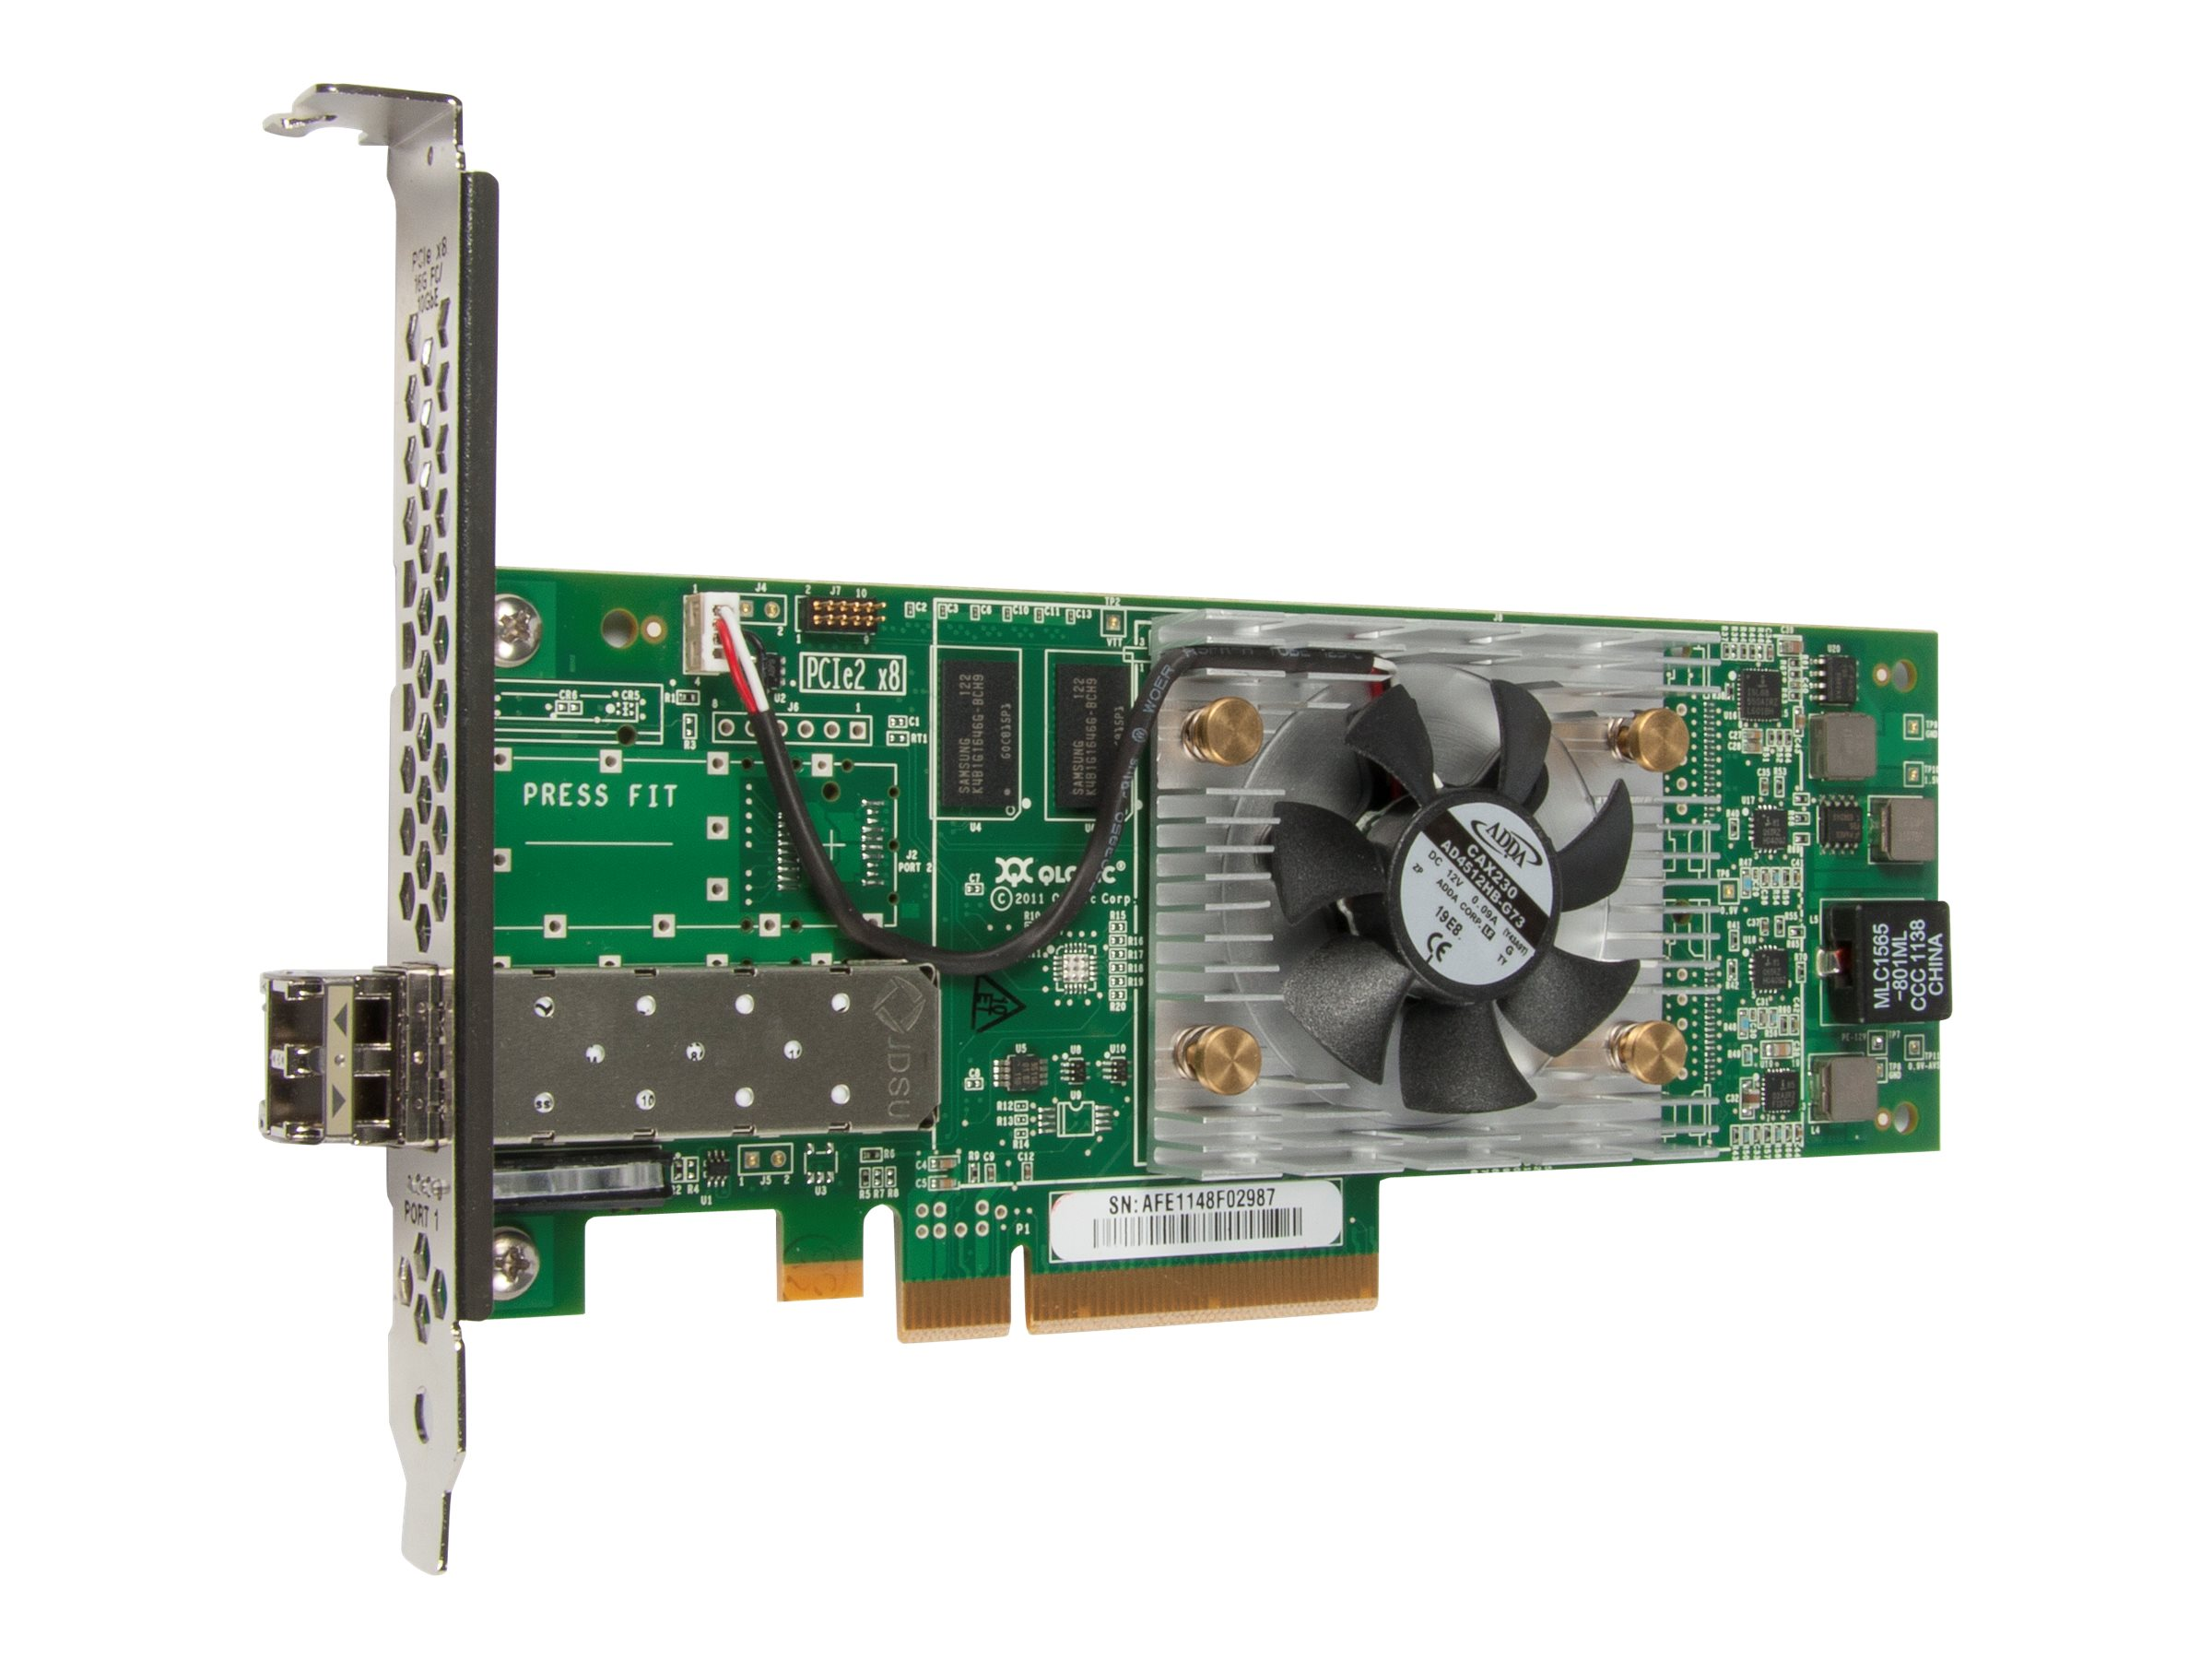 Qlogic 2600 Series Single-Port 16Gbps Fibre Channel-to-PCIe Adapters